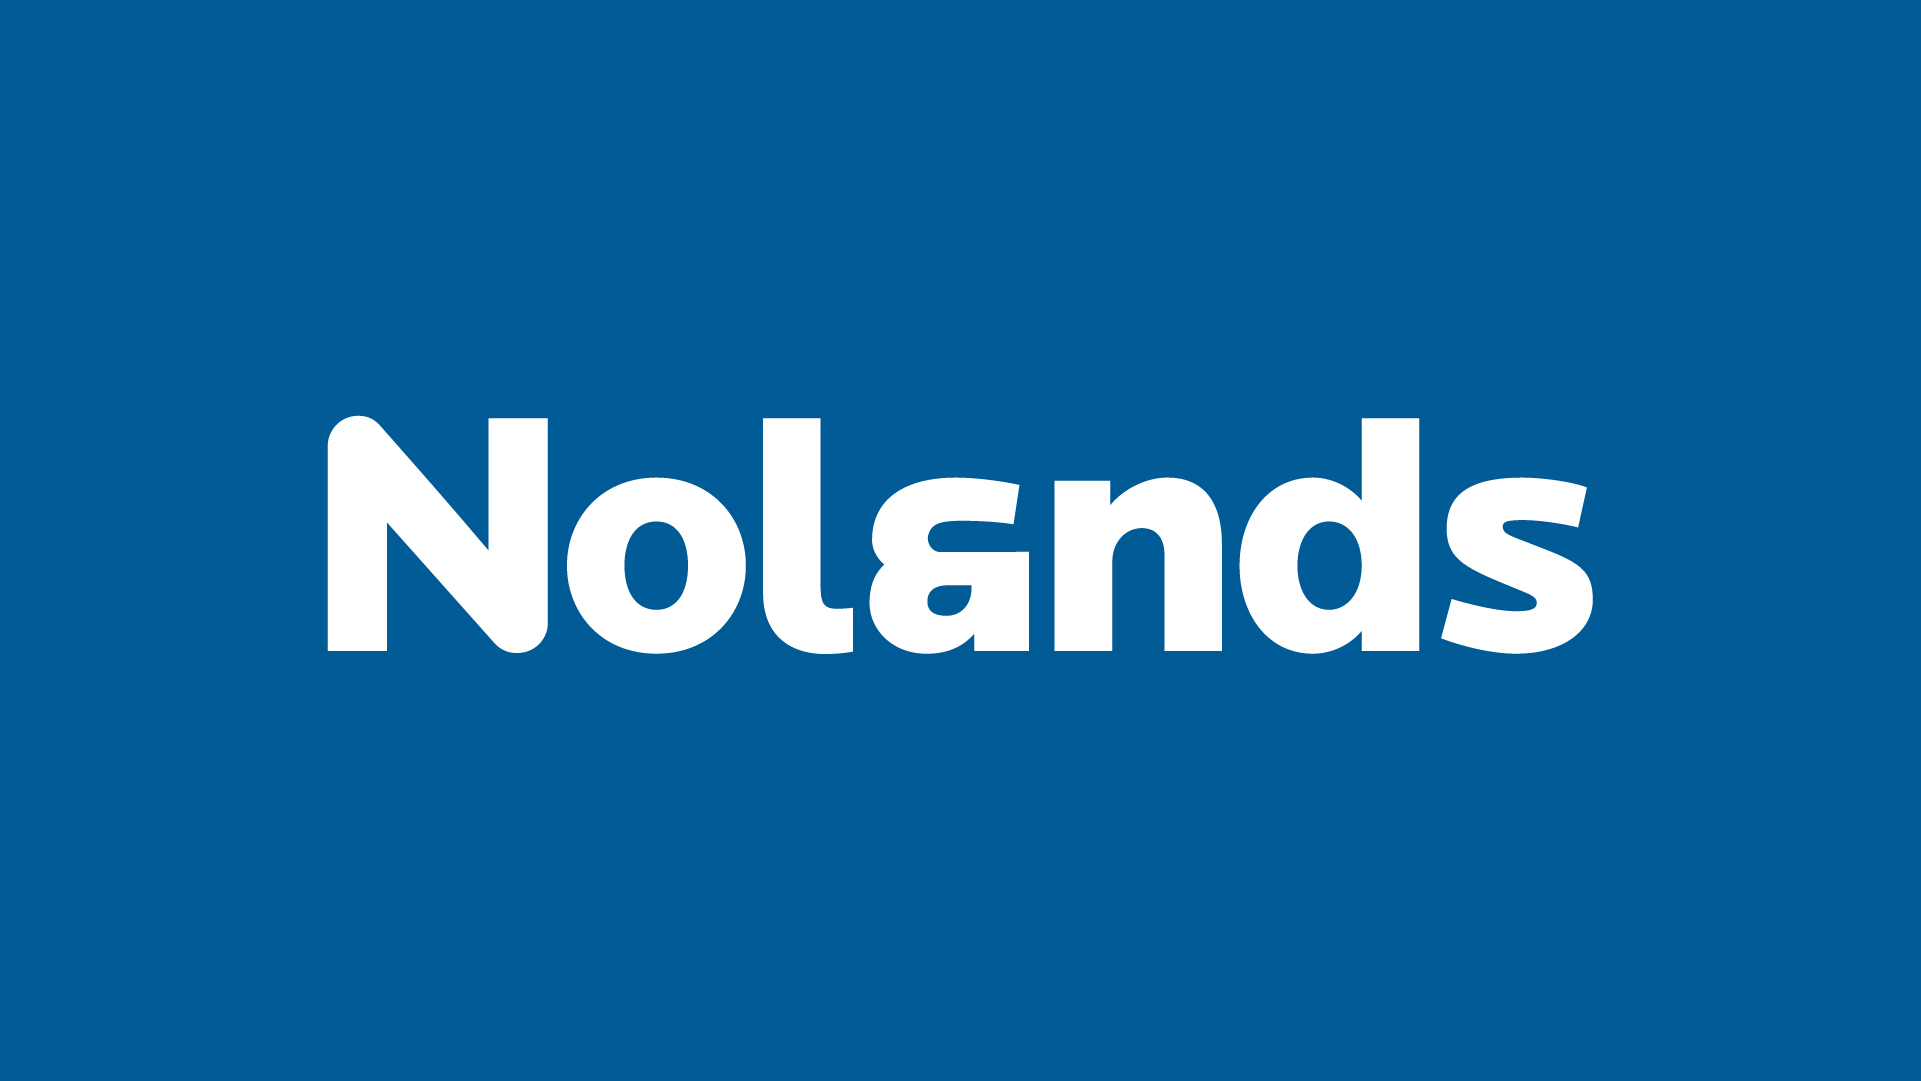 AMPERSAND and Nolands_Logos-03